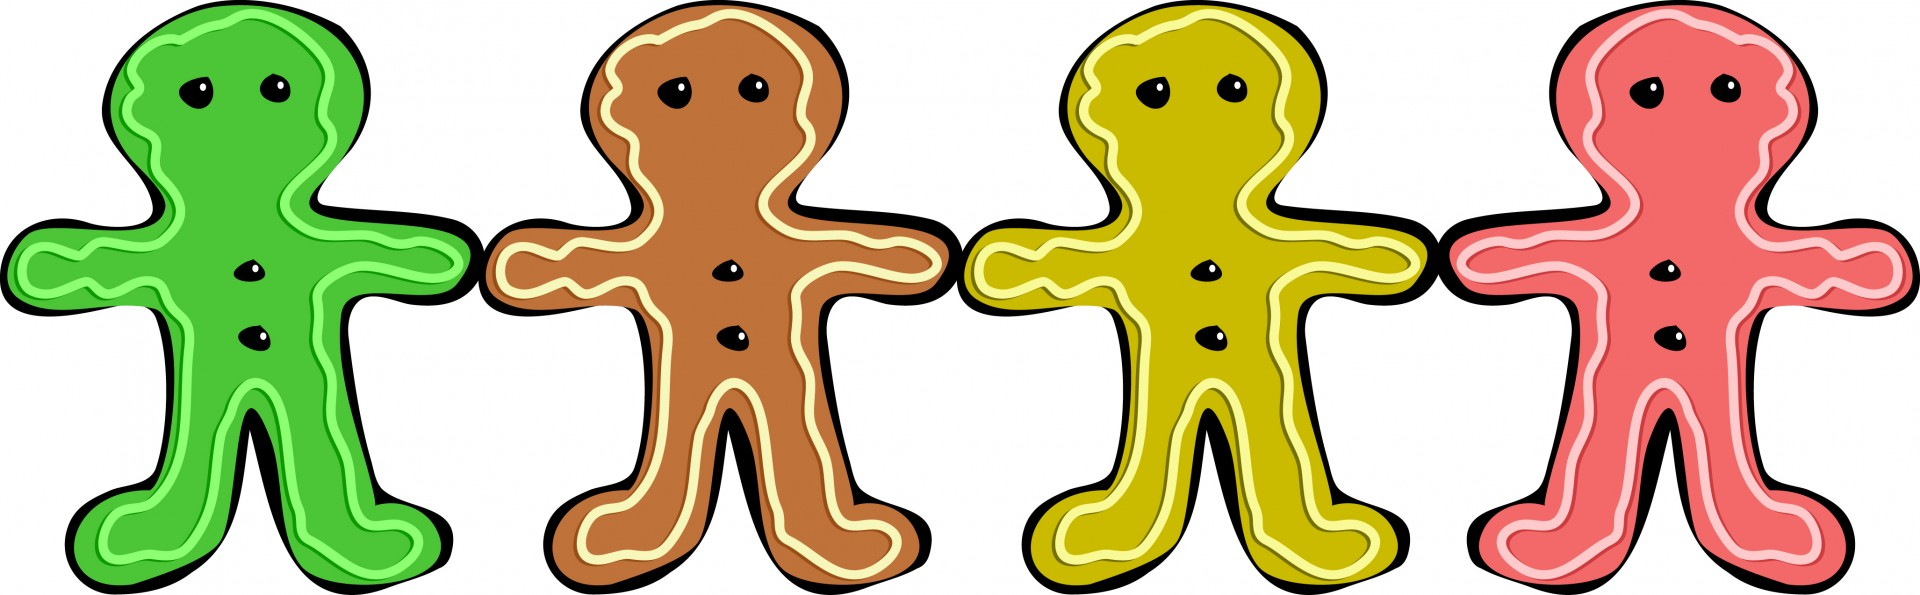 1920x595 Gingerbread Man Free Stock Photo